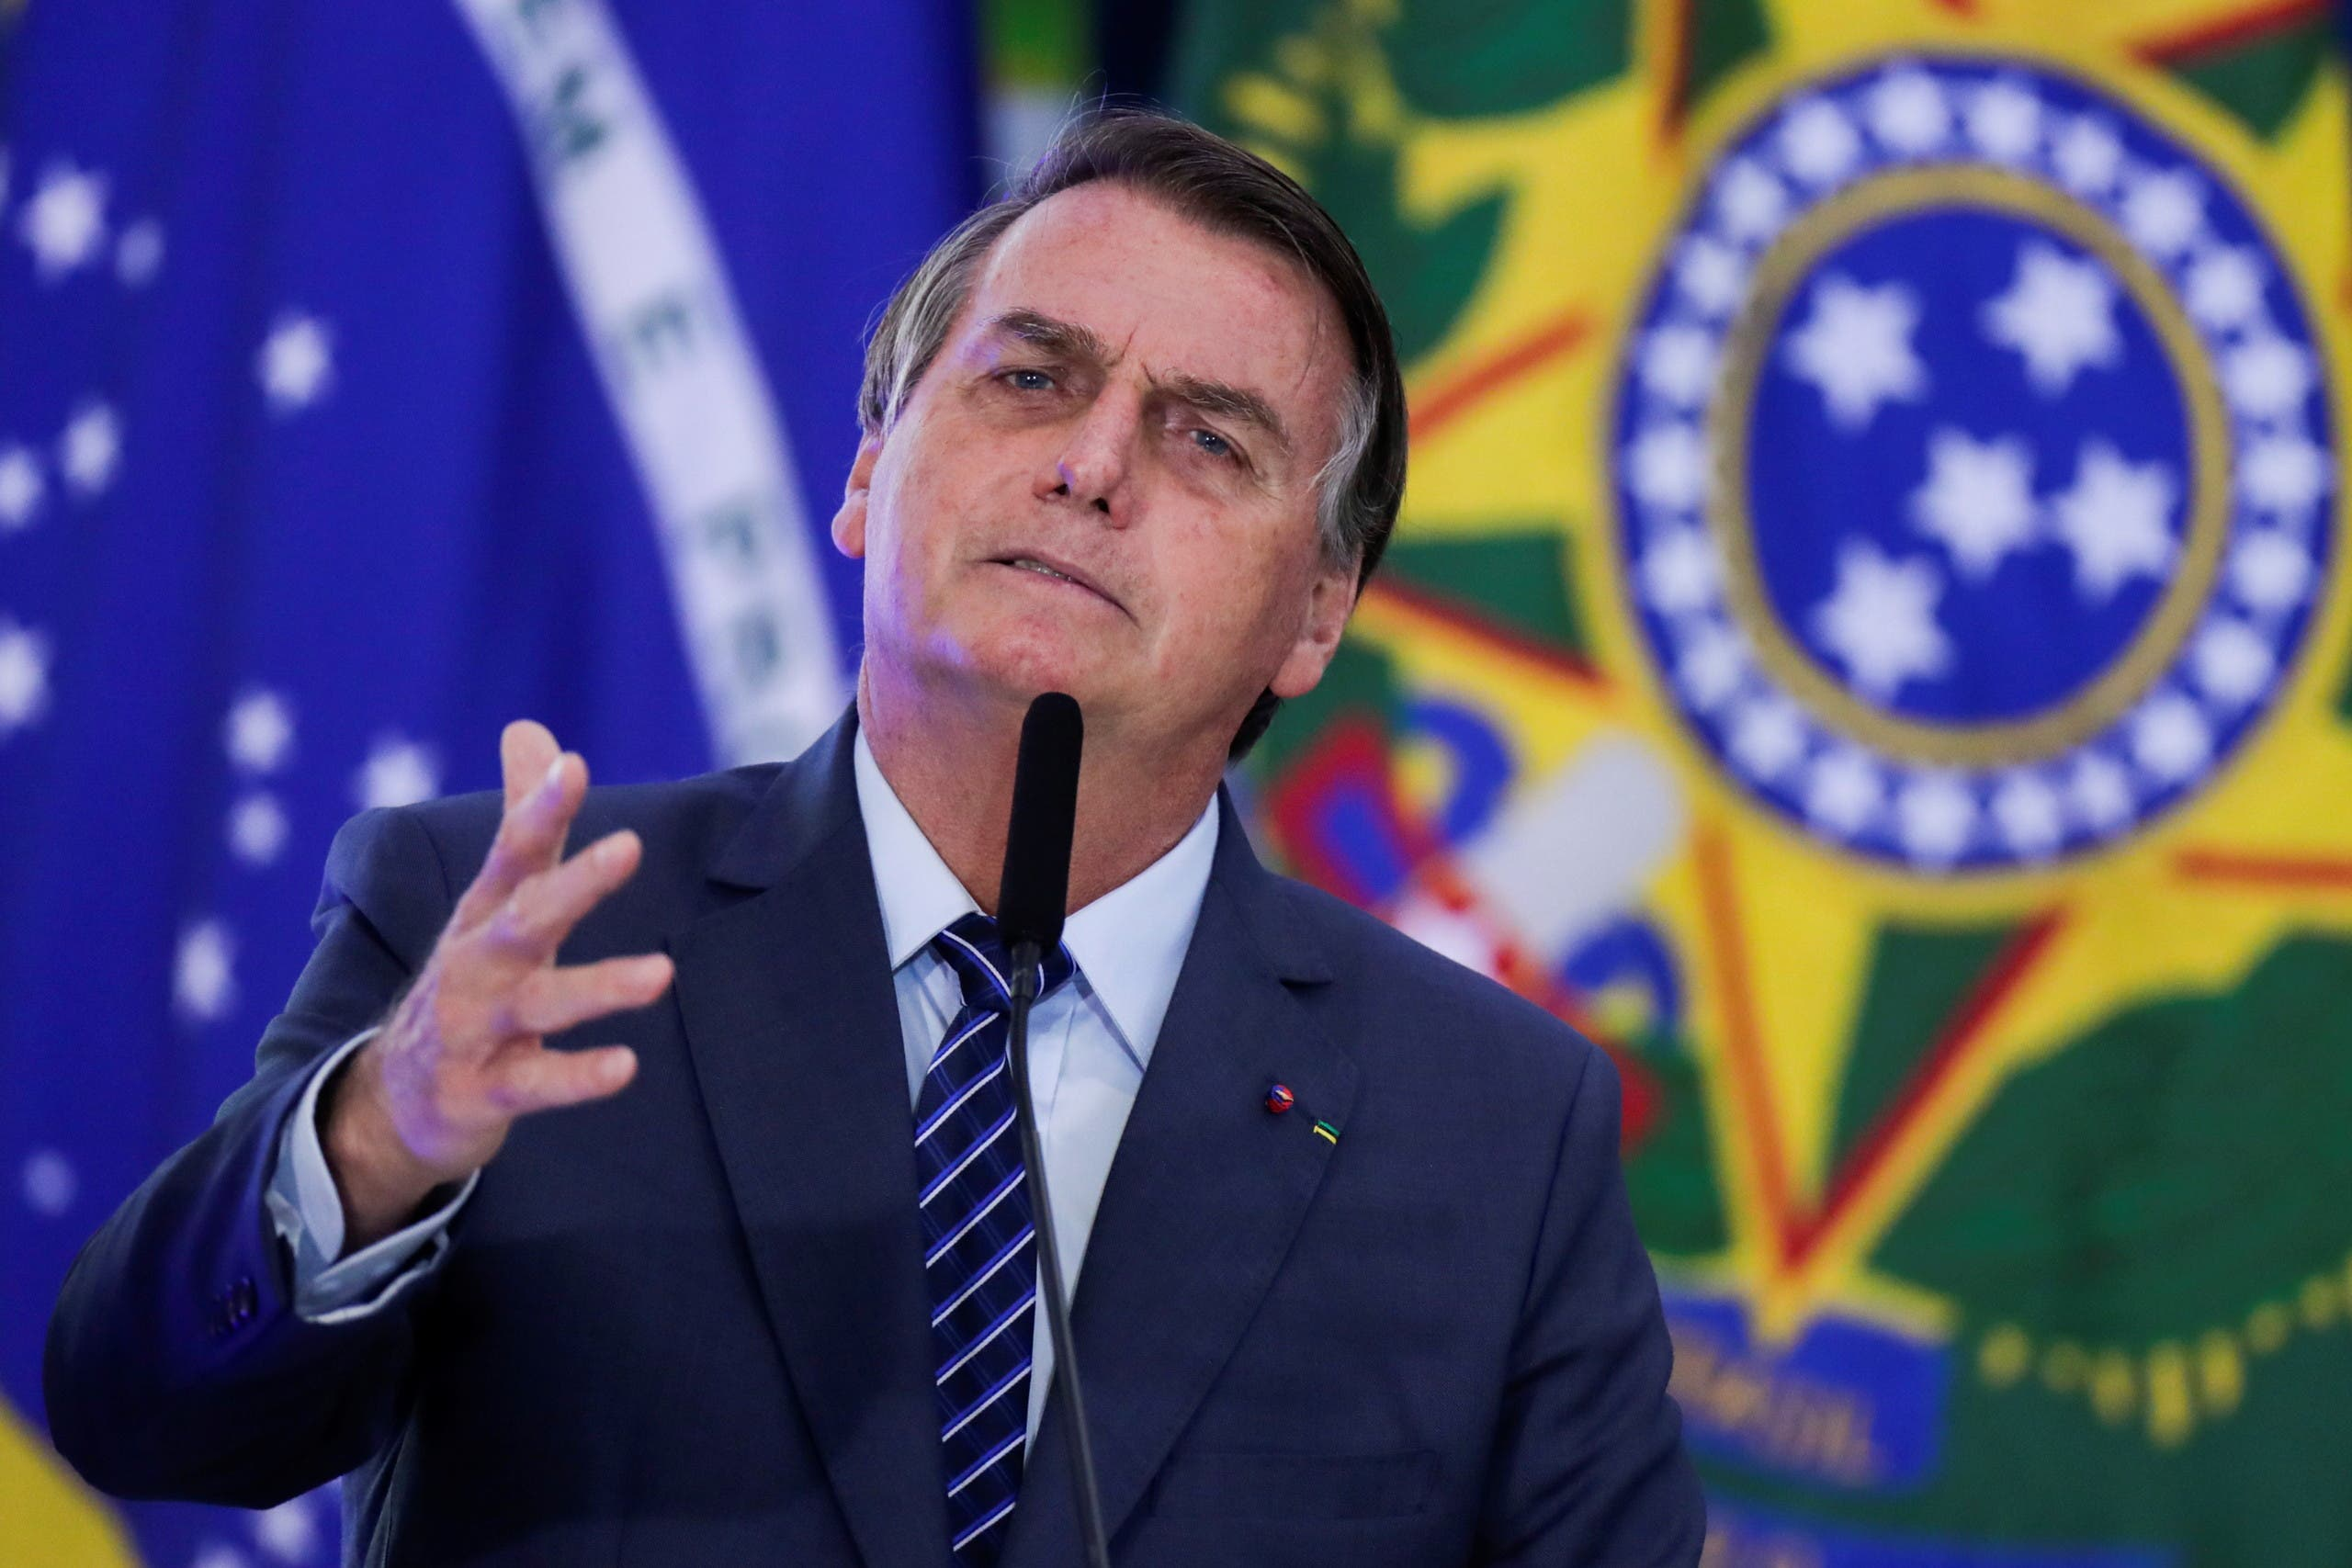 Brazil's President Jair Bolsonaro speaks during the opening ceremony of the Communications Week at the Planalto Palace in Brasilia, Brazil May 5, 2021. (File photo: Reuters)